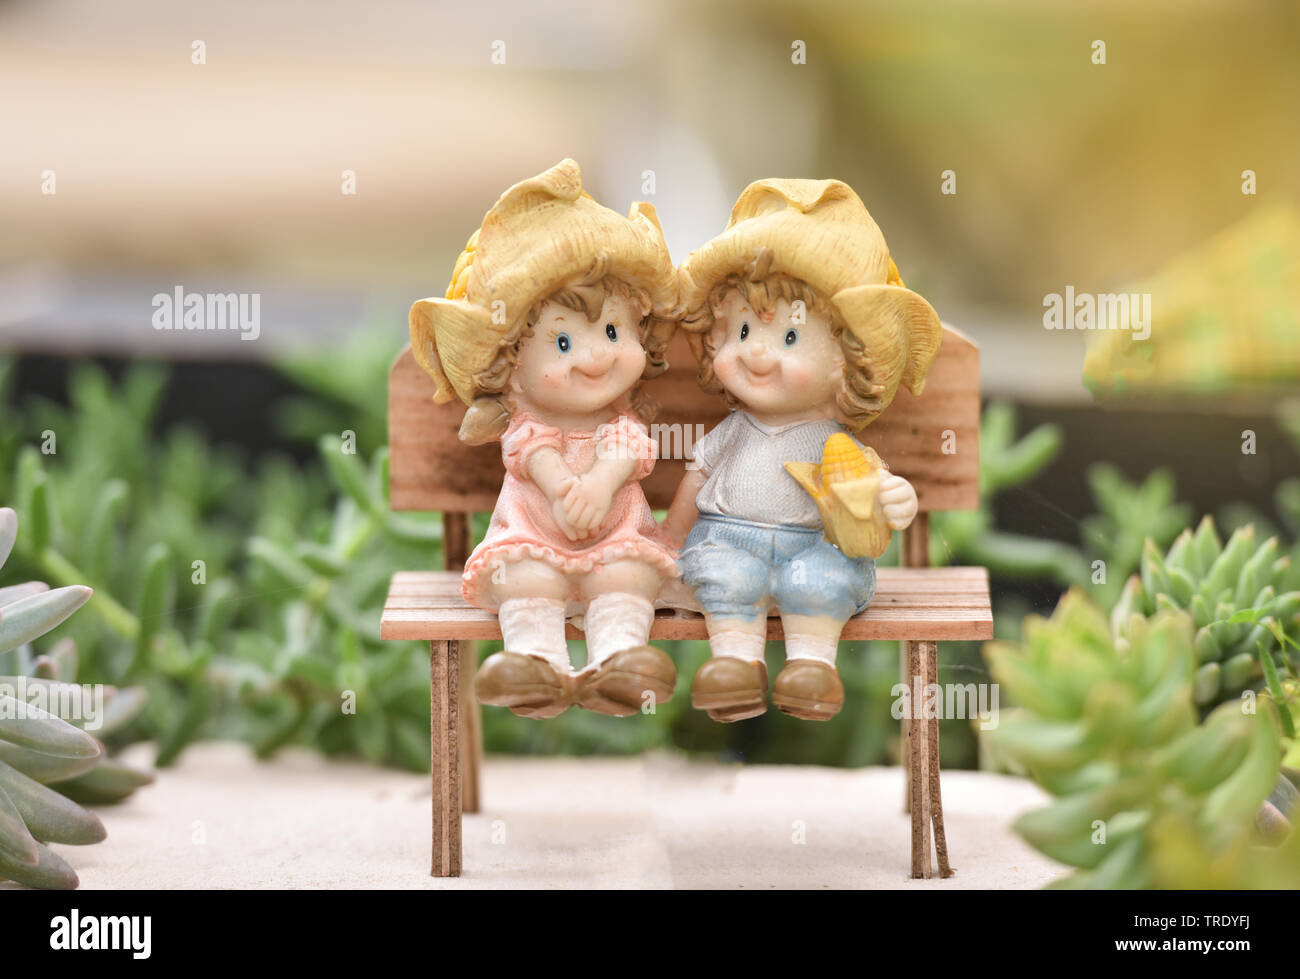 Miraculous Little Couple Doll Cute Sitting On Wooden Bench Decorate The Caraccident5 Cool Chair Designs And Ideas Caraccident5Info